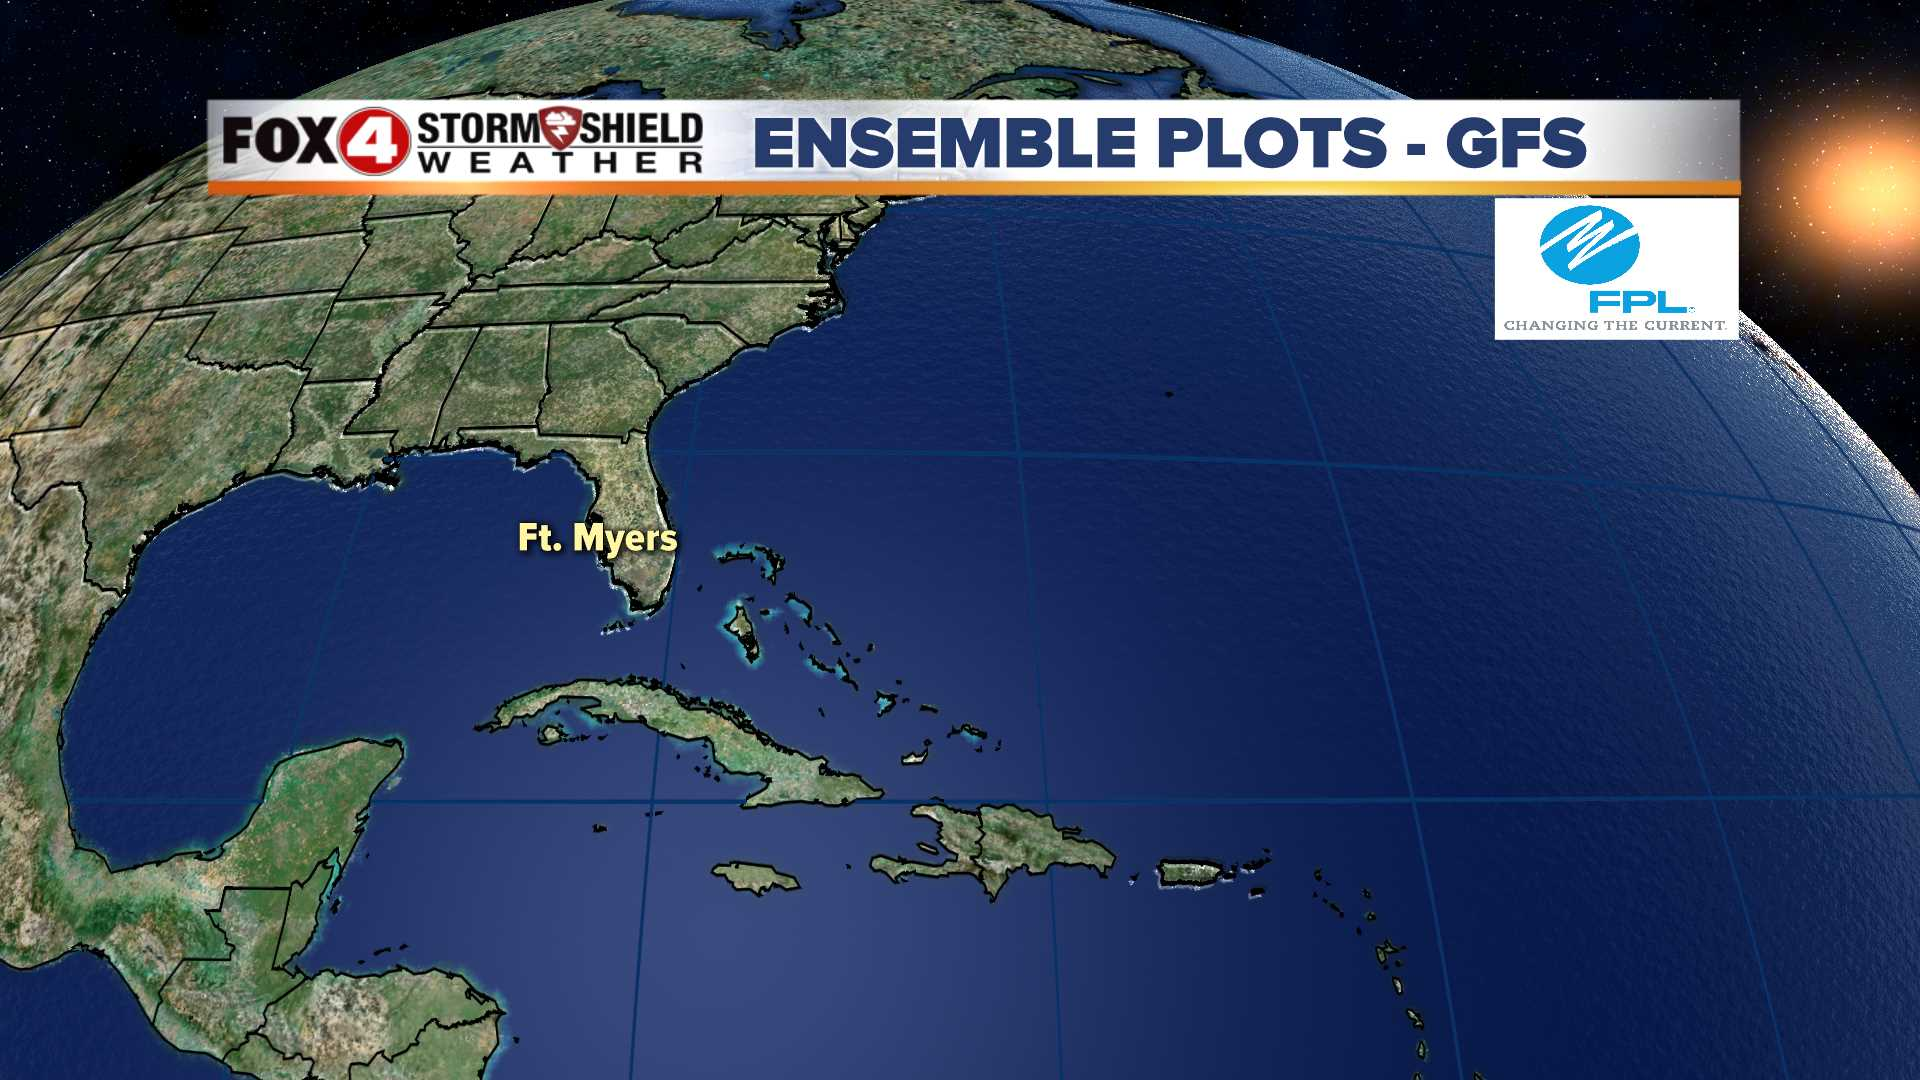 Spaghetti Plots GFS Ensemble for SW Florida